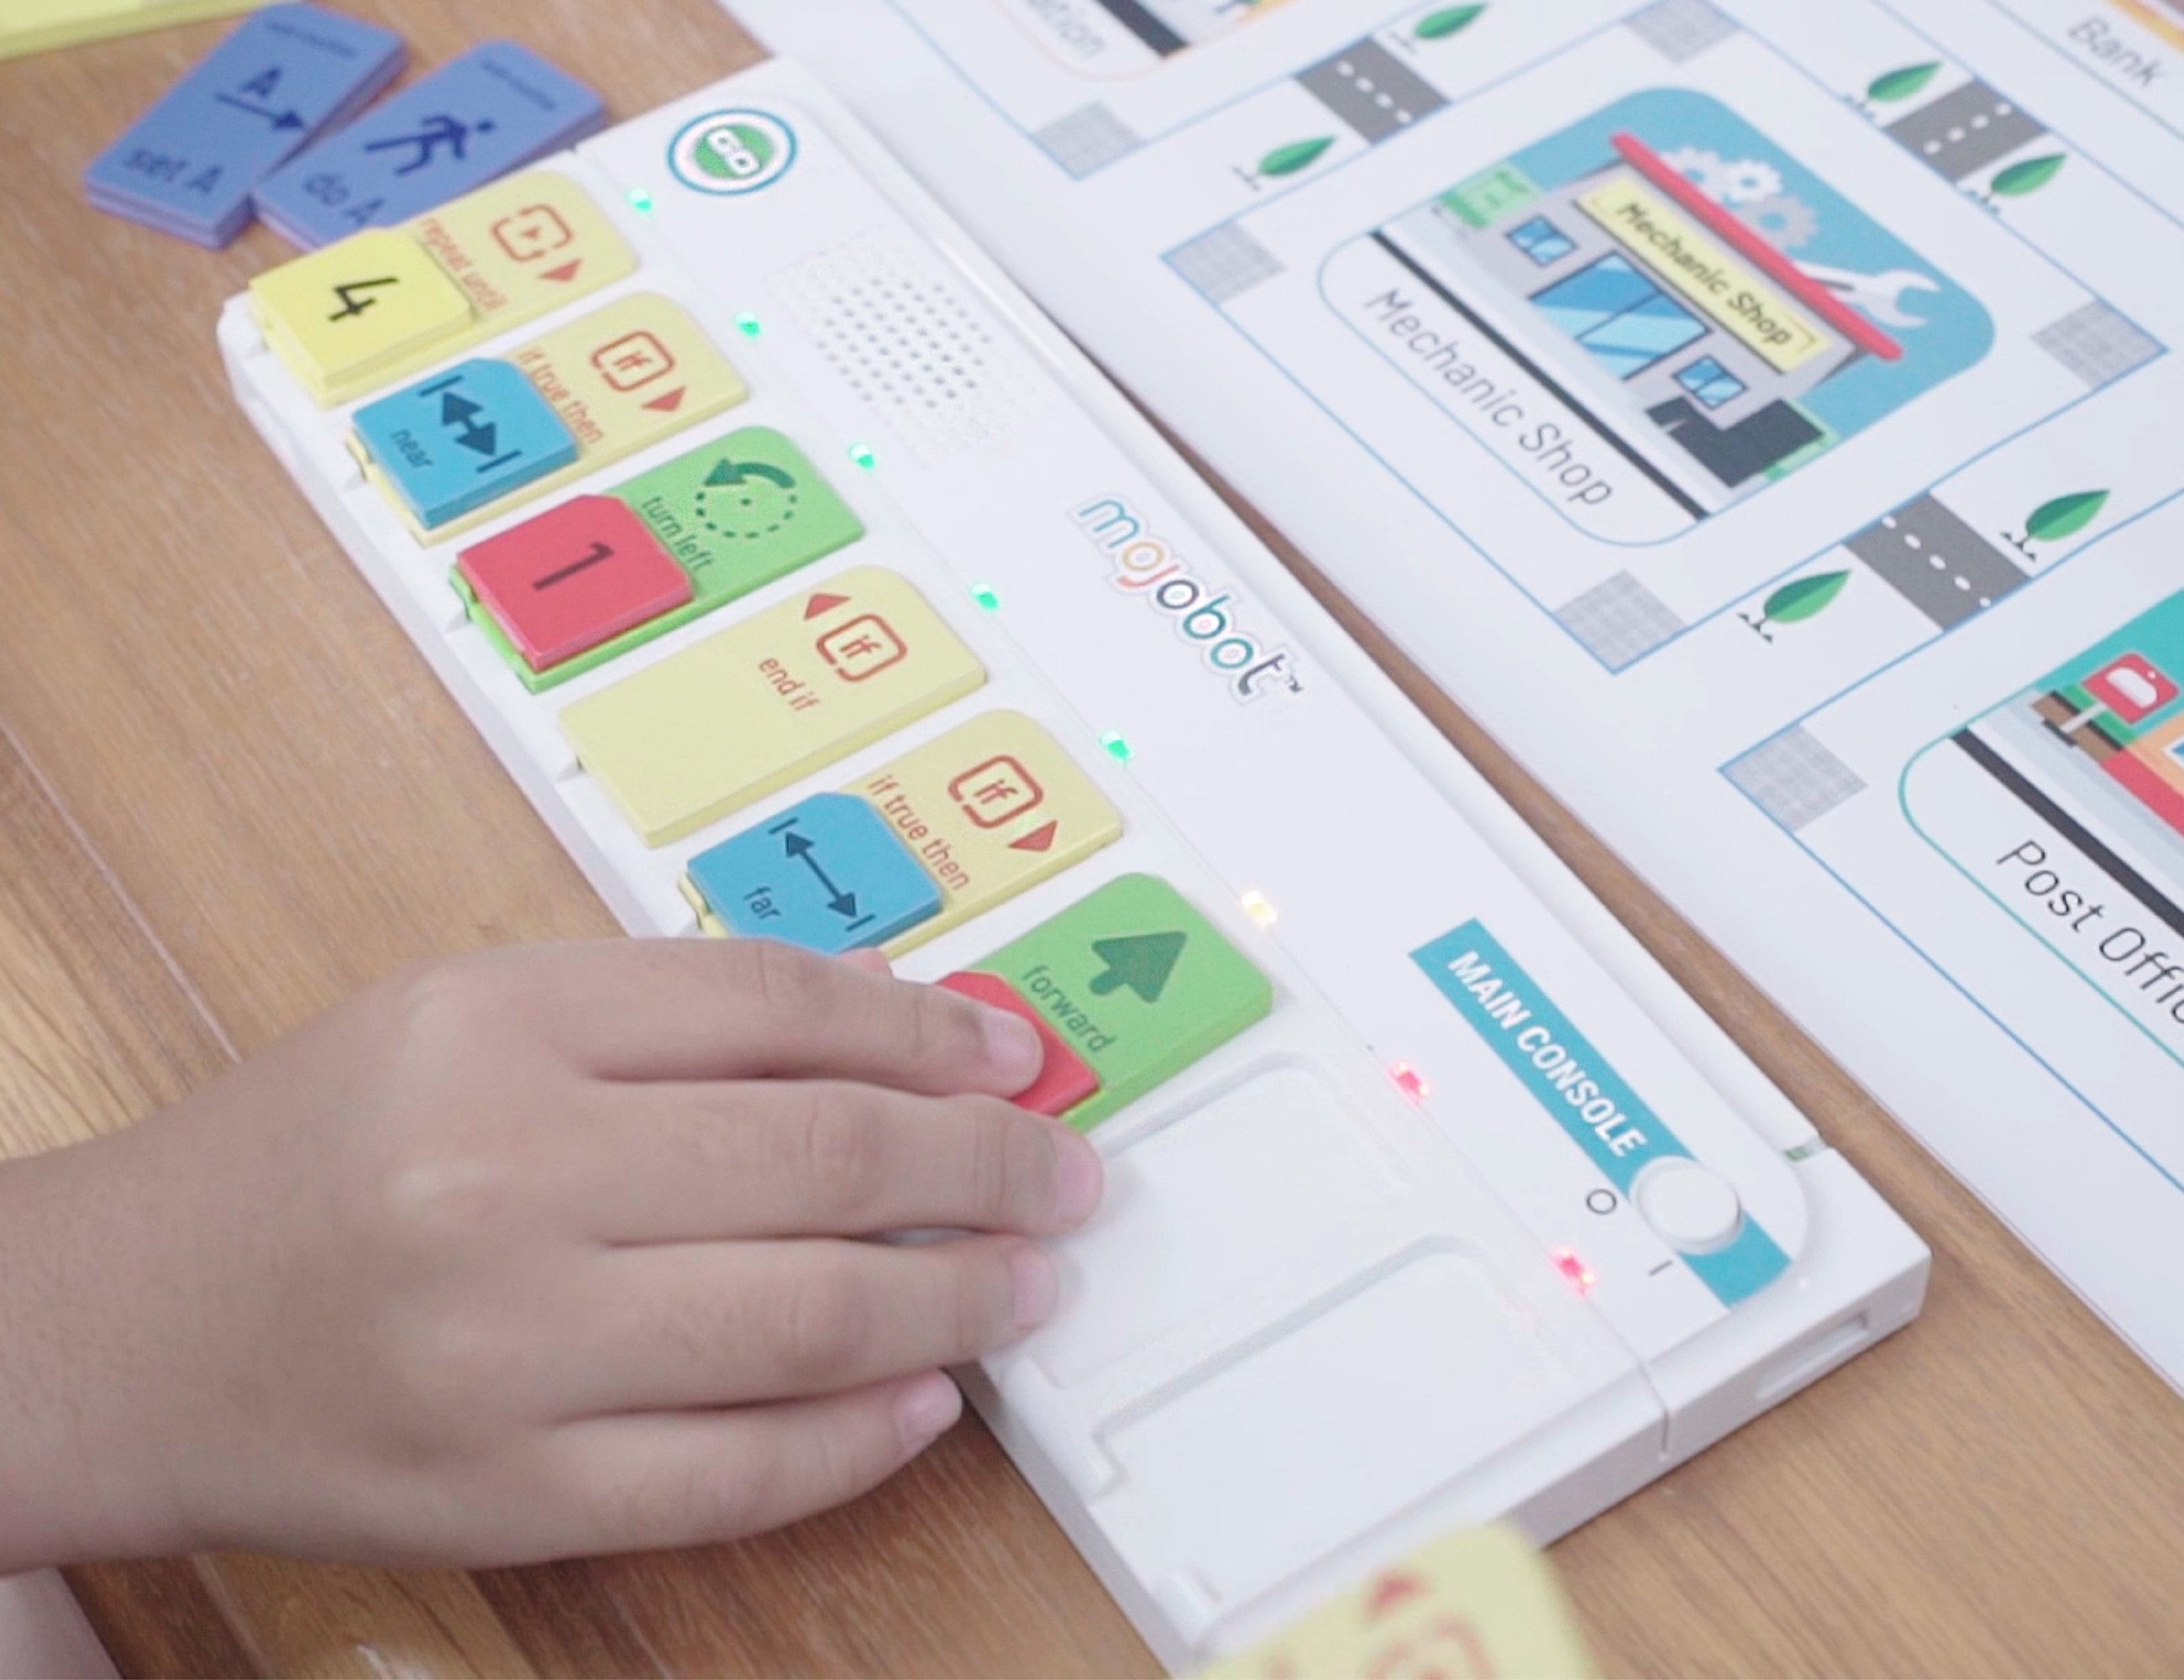 Mojobot Coding Robot Board Game helps kids learn to code